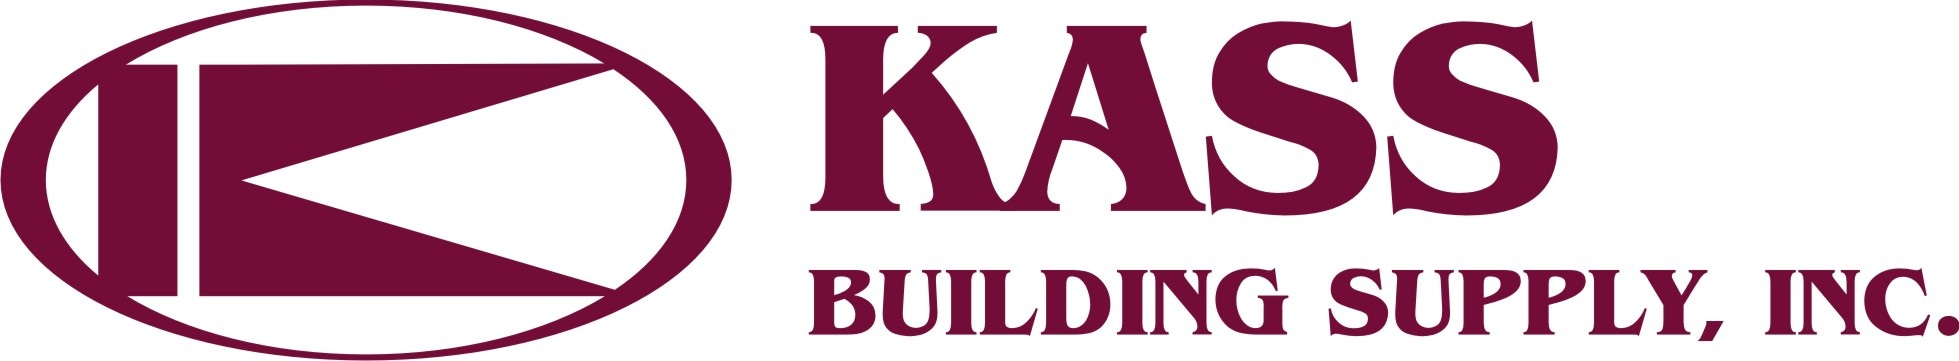 Kass Building Supply, Inc. Logo